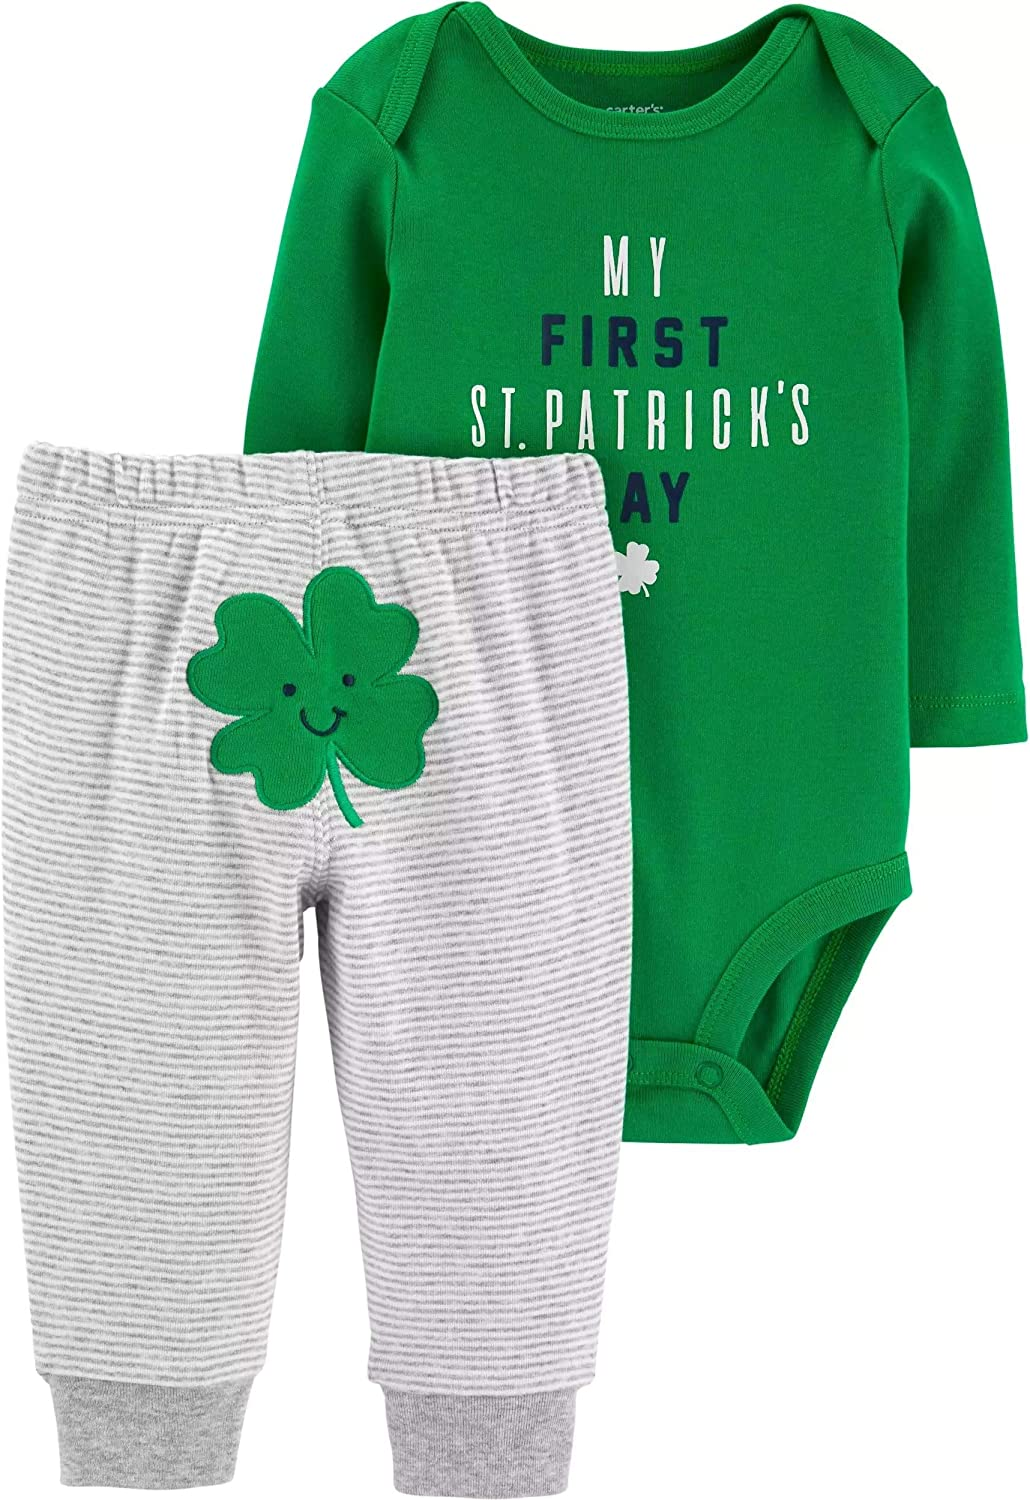 Carter's Baby Boys' Direct store Luckiest Set and overseas Pants Bodysuit